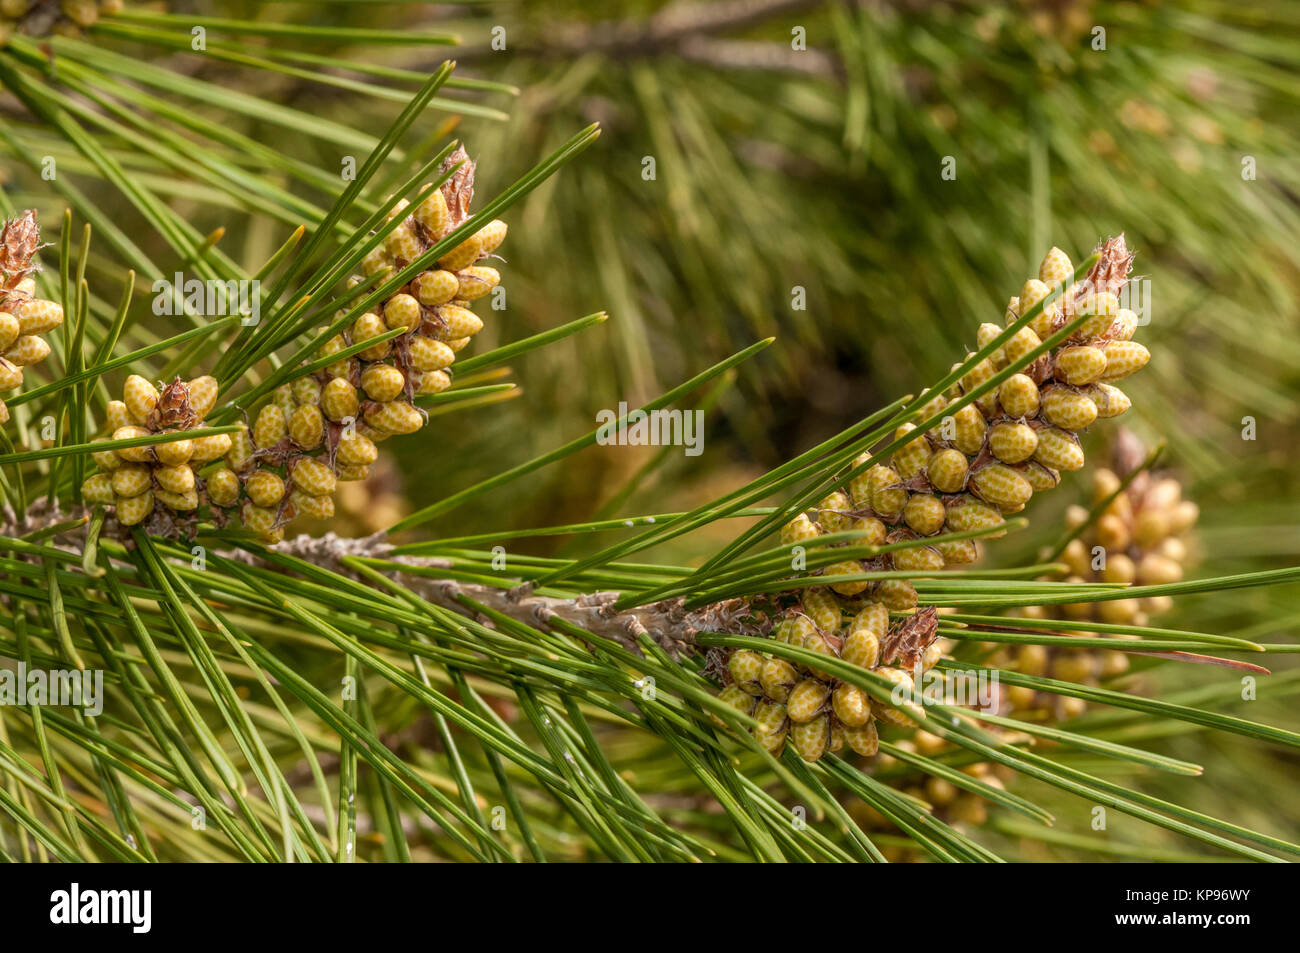 close-up view of a pine leaf, Aleppo pine, Pinus halepensis - Stock Image